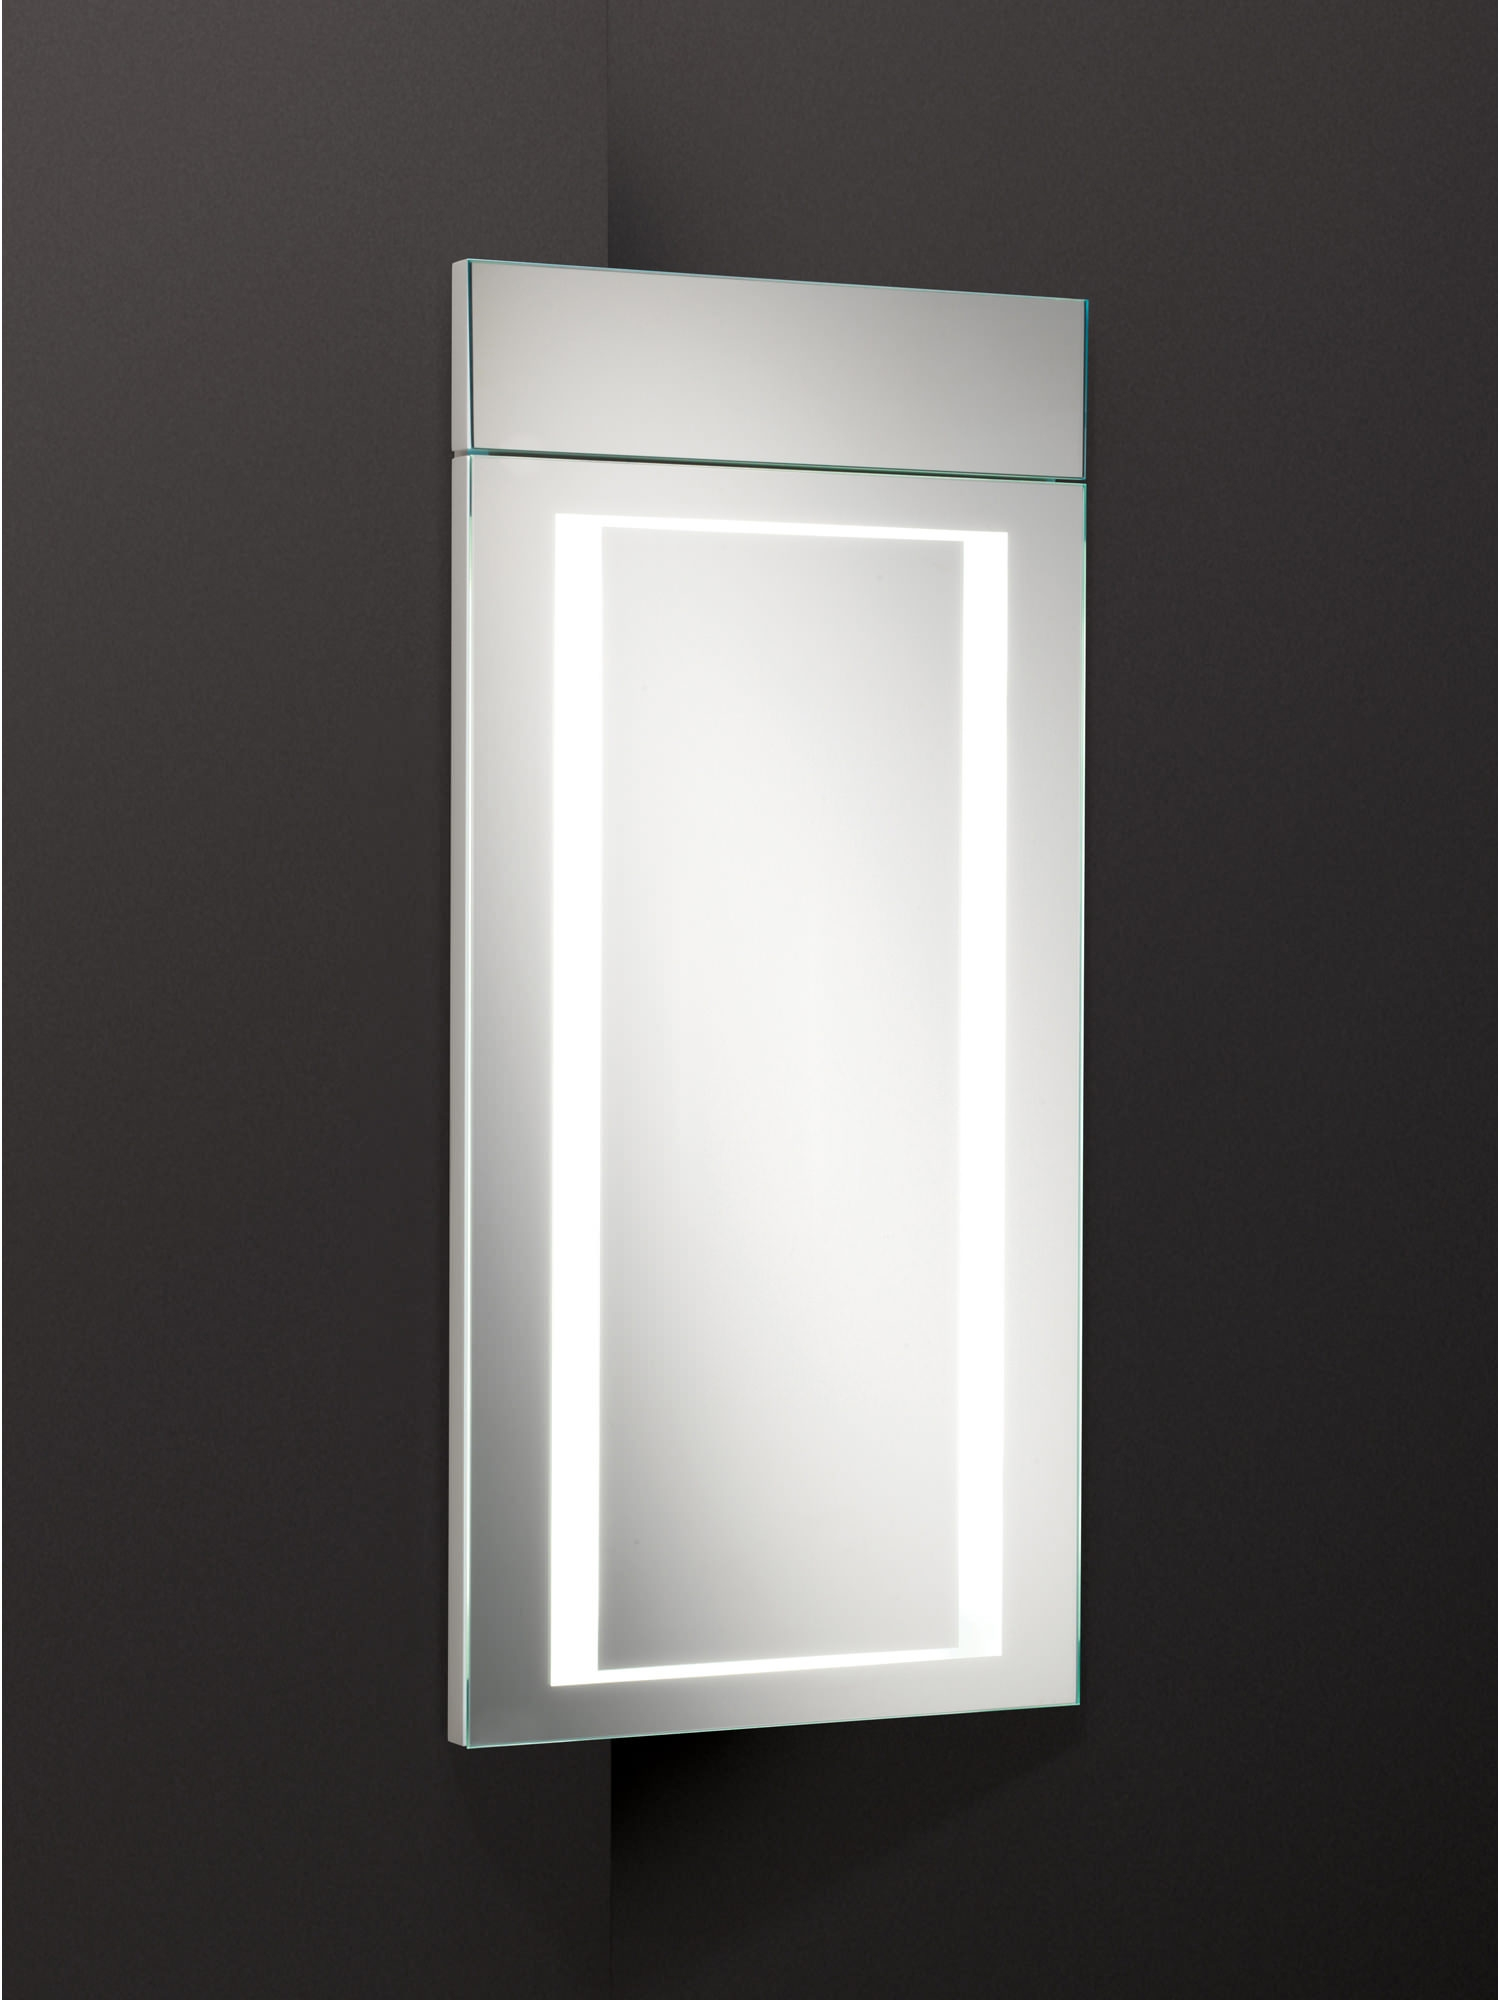 Permalink to Corner Bathroom Cabinet With Mirror And Light